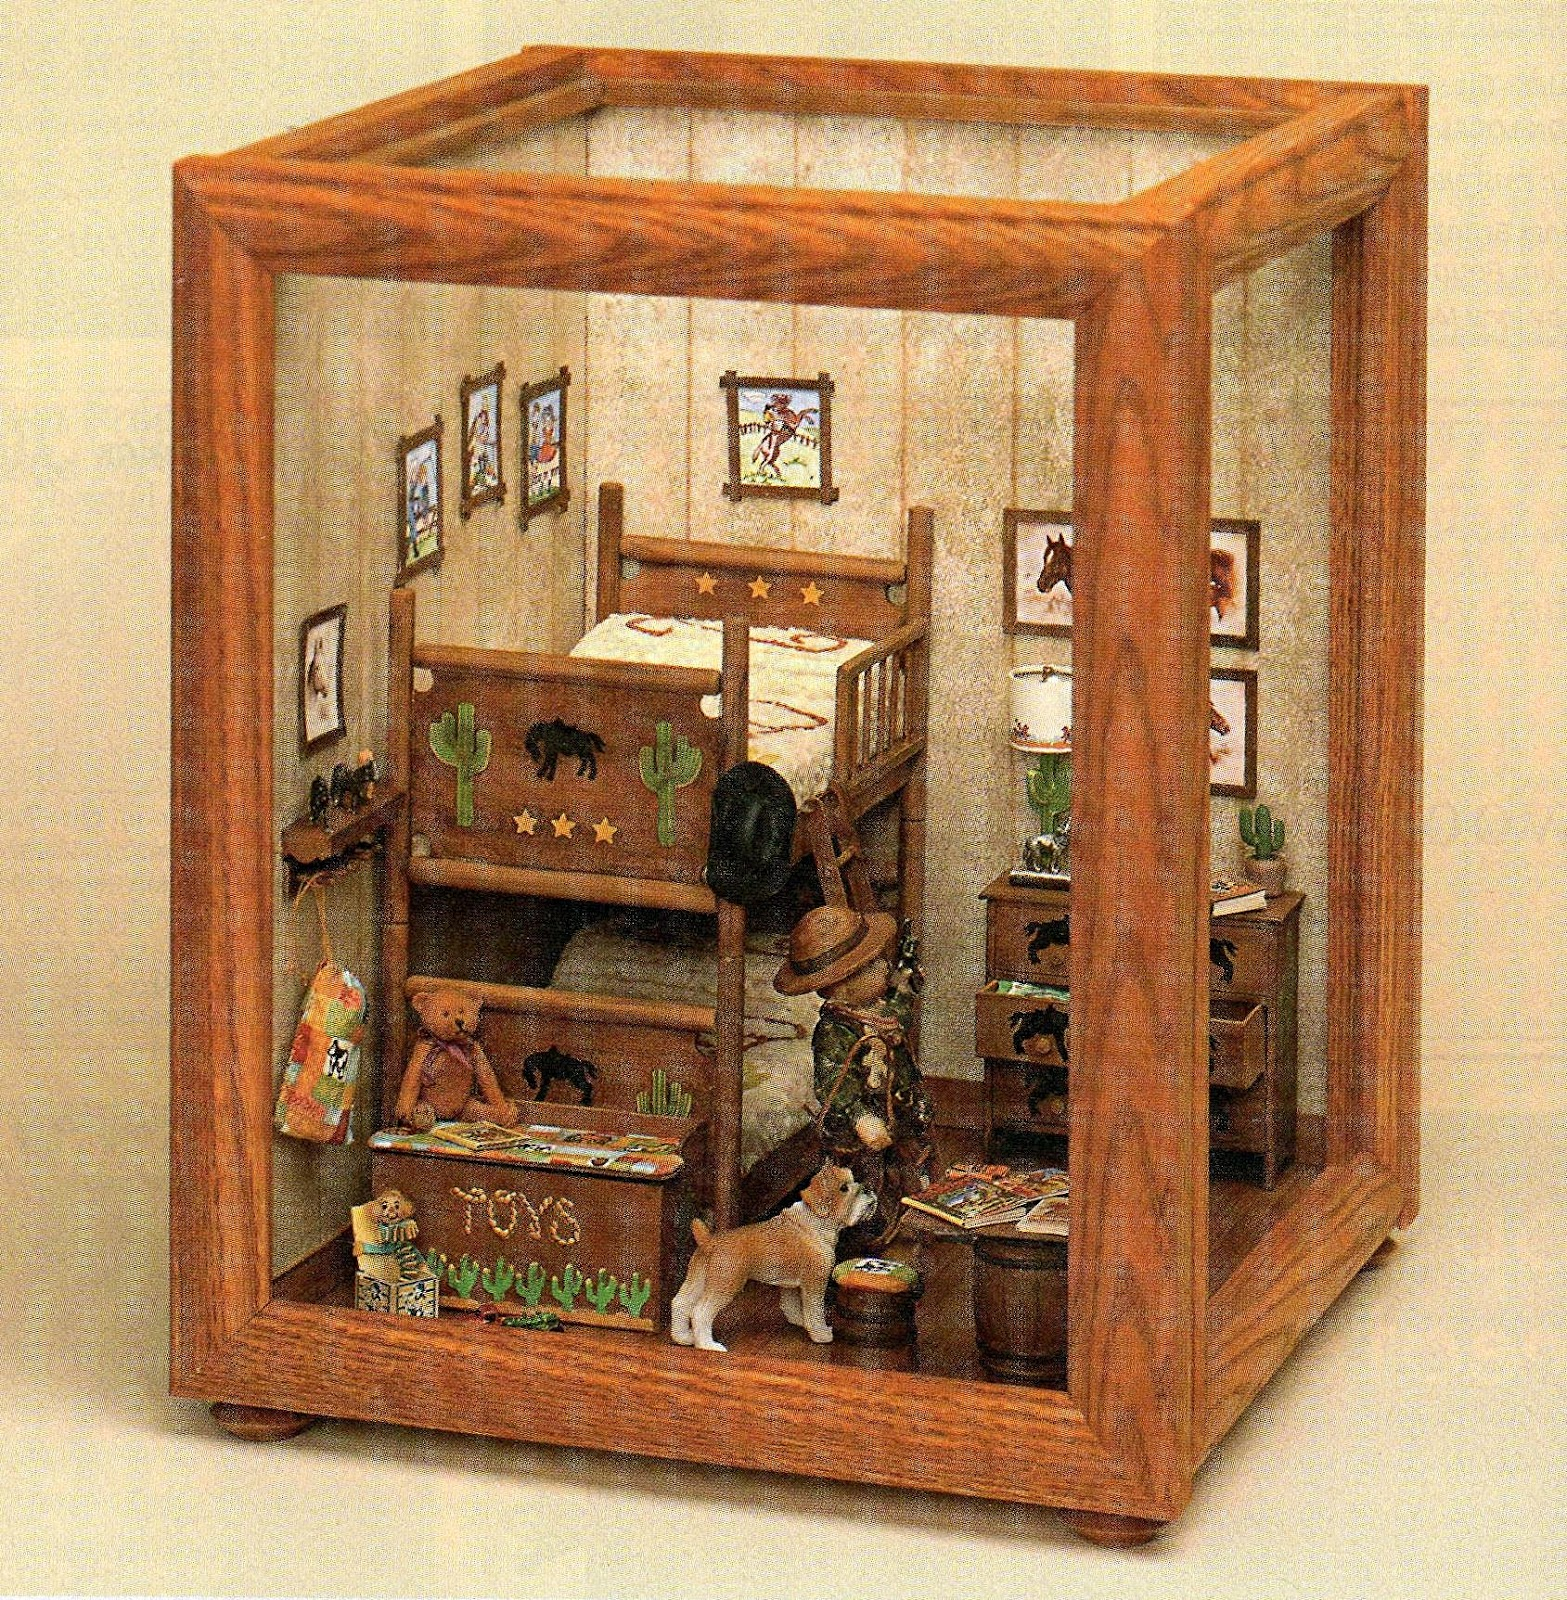 Dollhouse Miniatures Diy: DYI DOLLHOUSE MINIATURES: MAKING ROOMS & DISPLAY BOXES